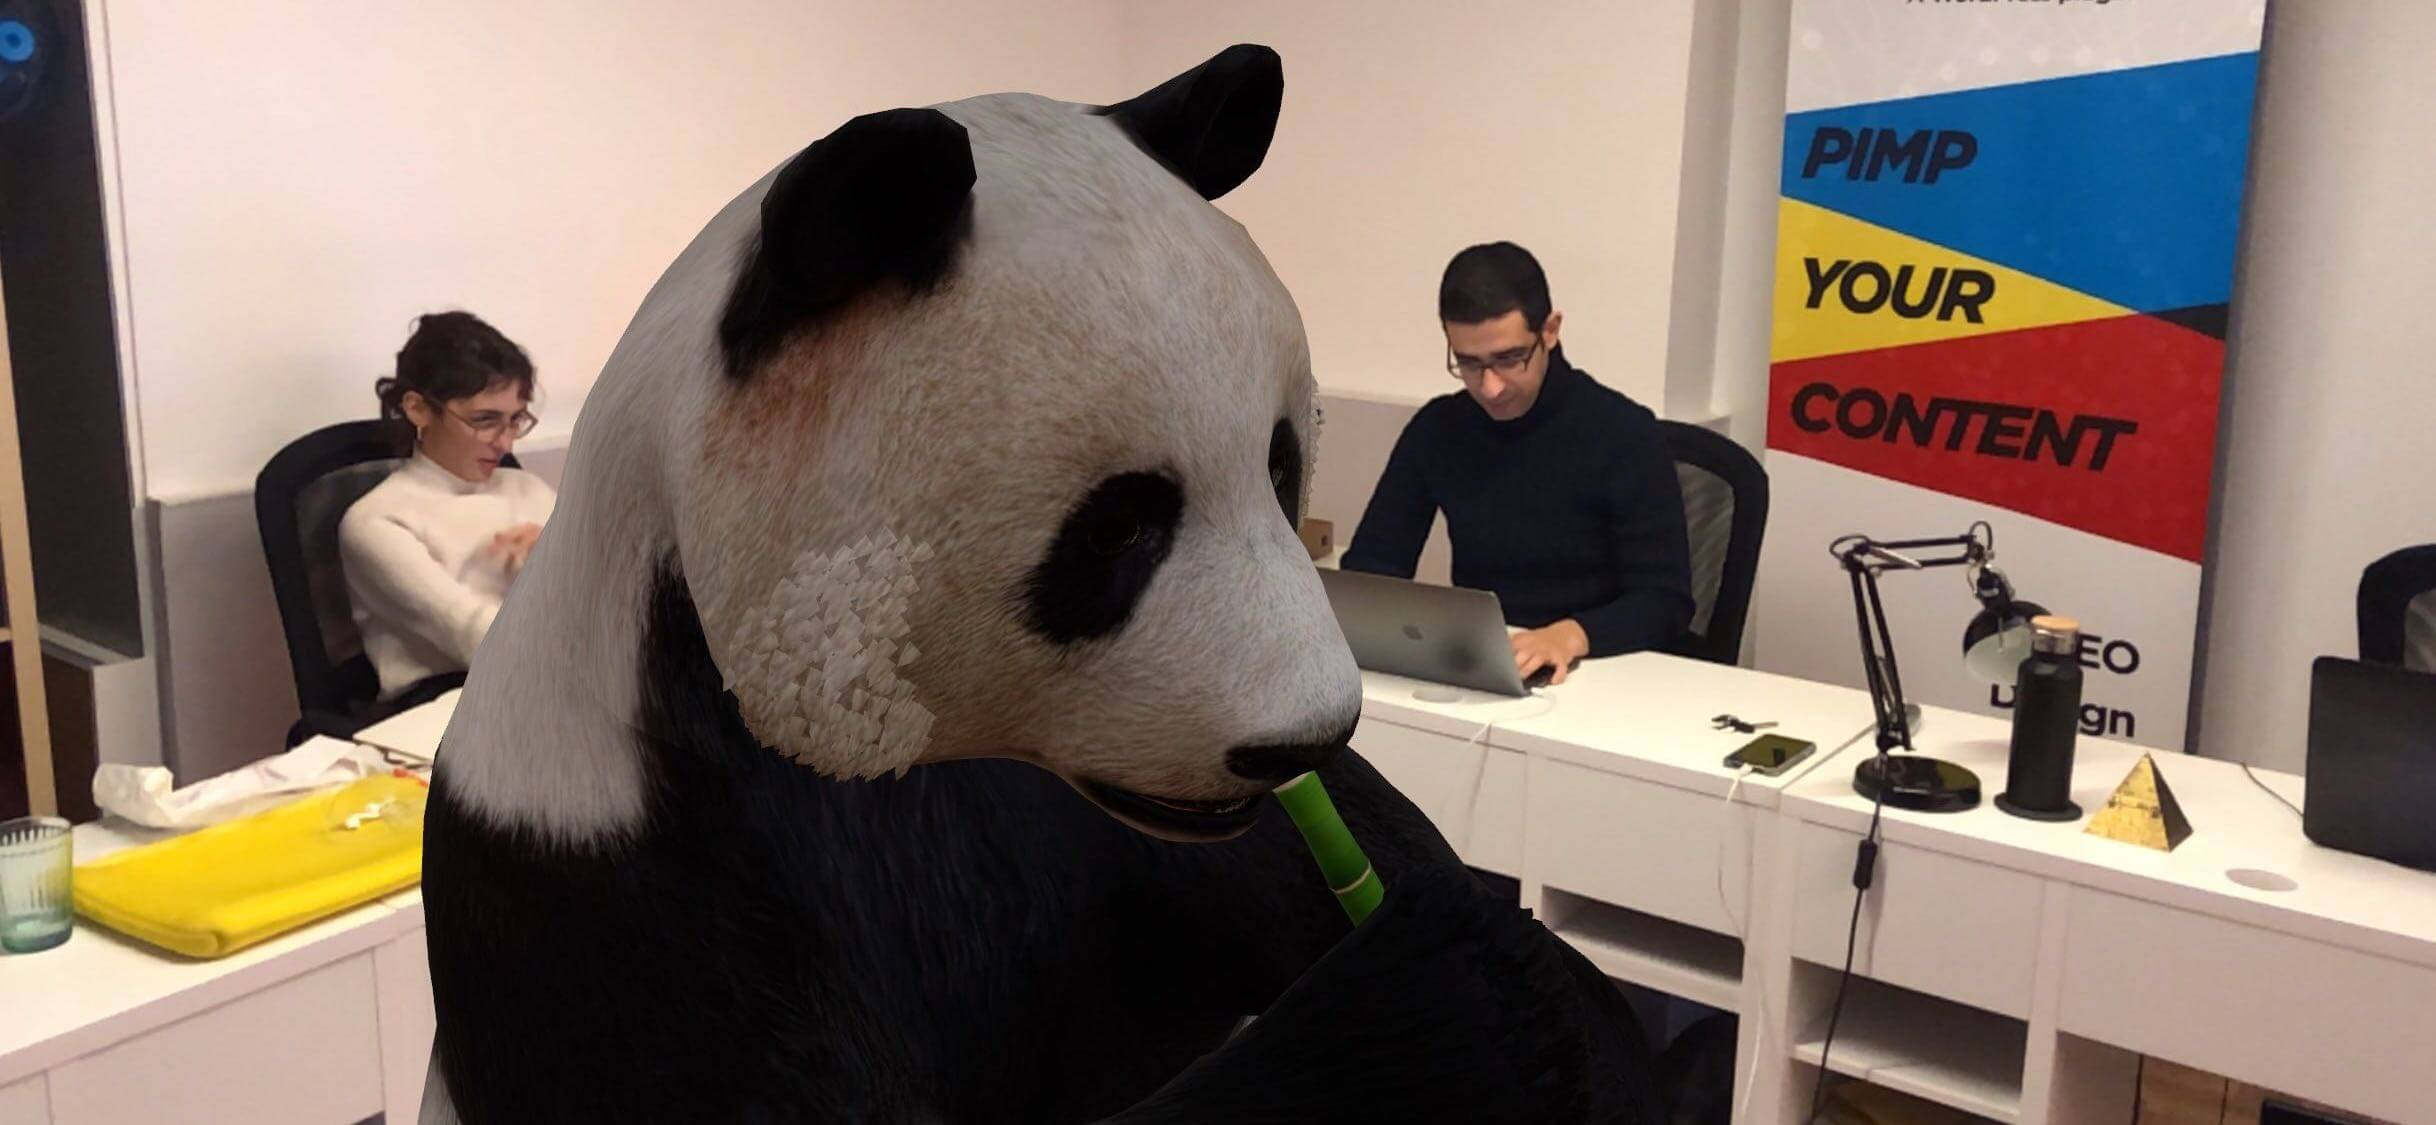 A Giant Panda just walked into our office ?